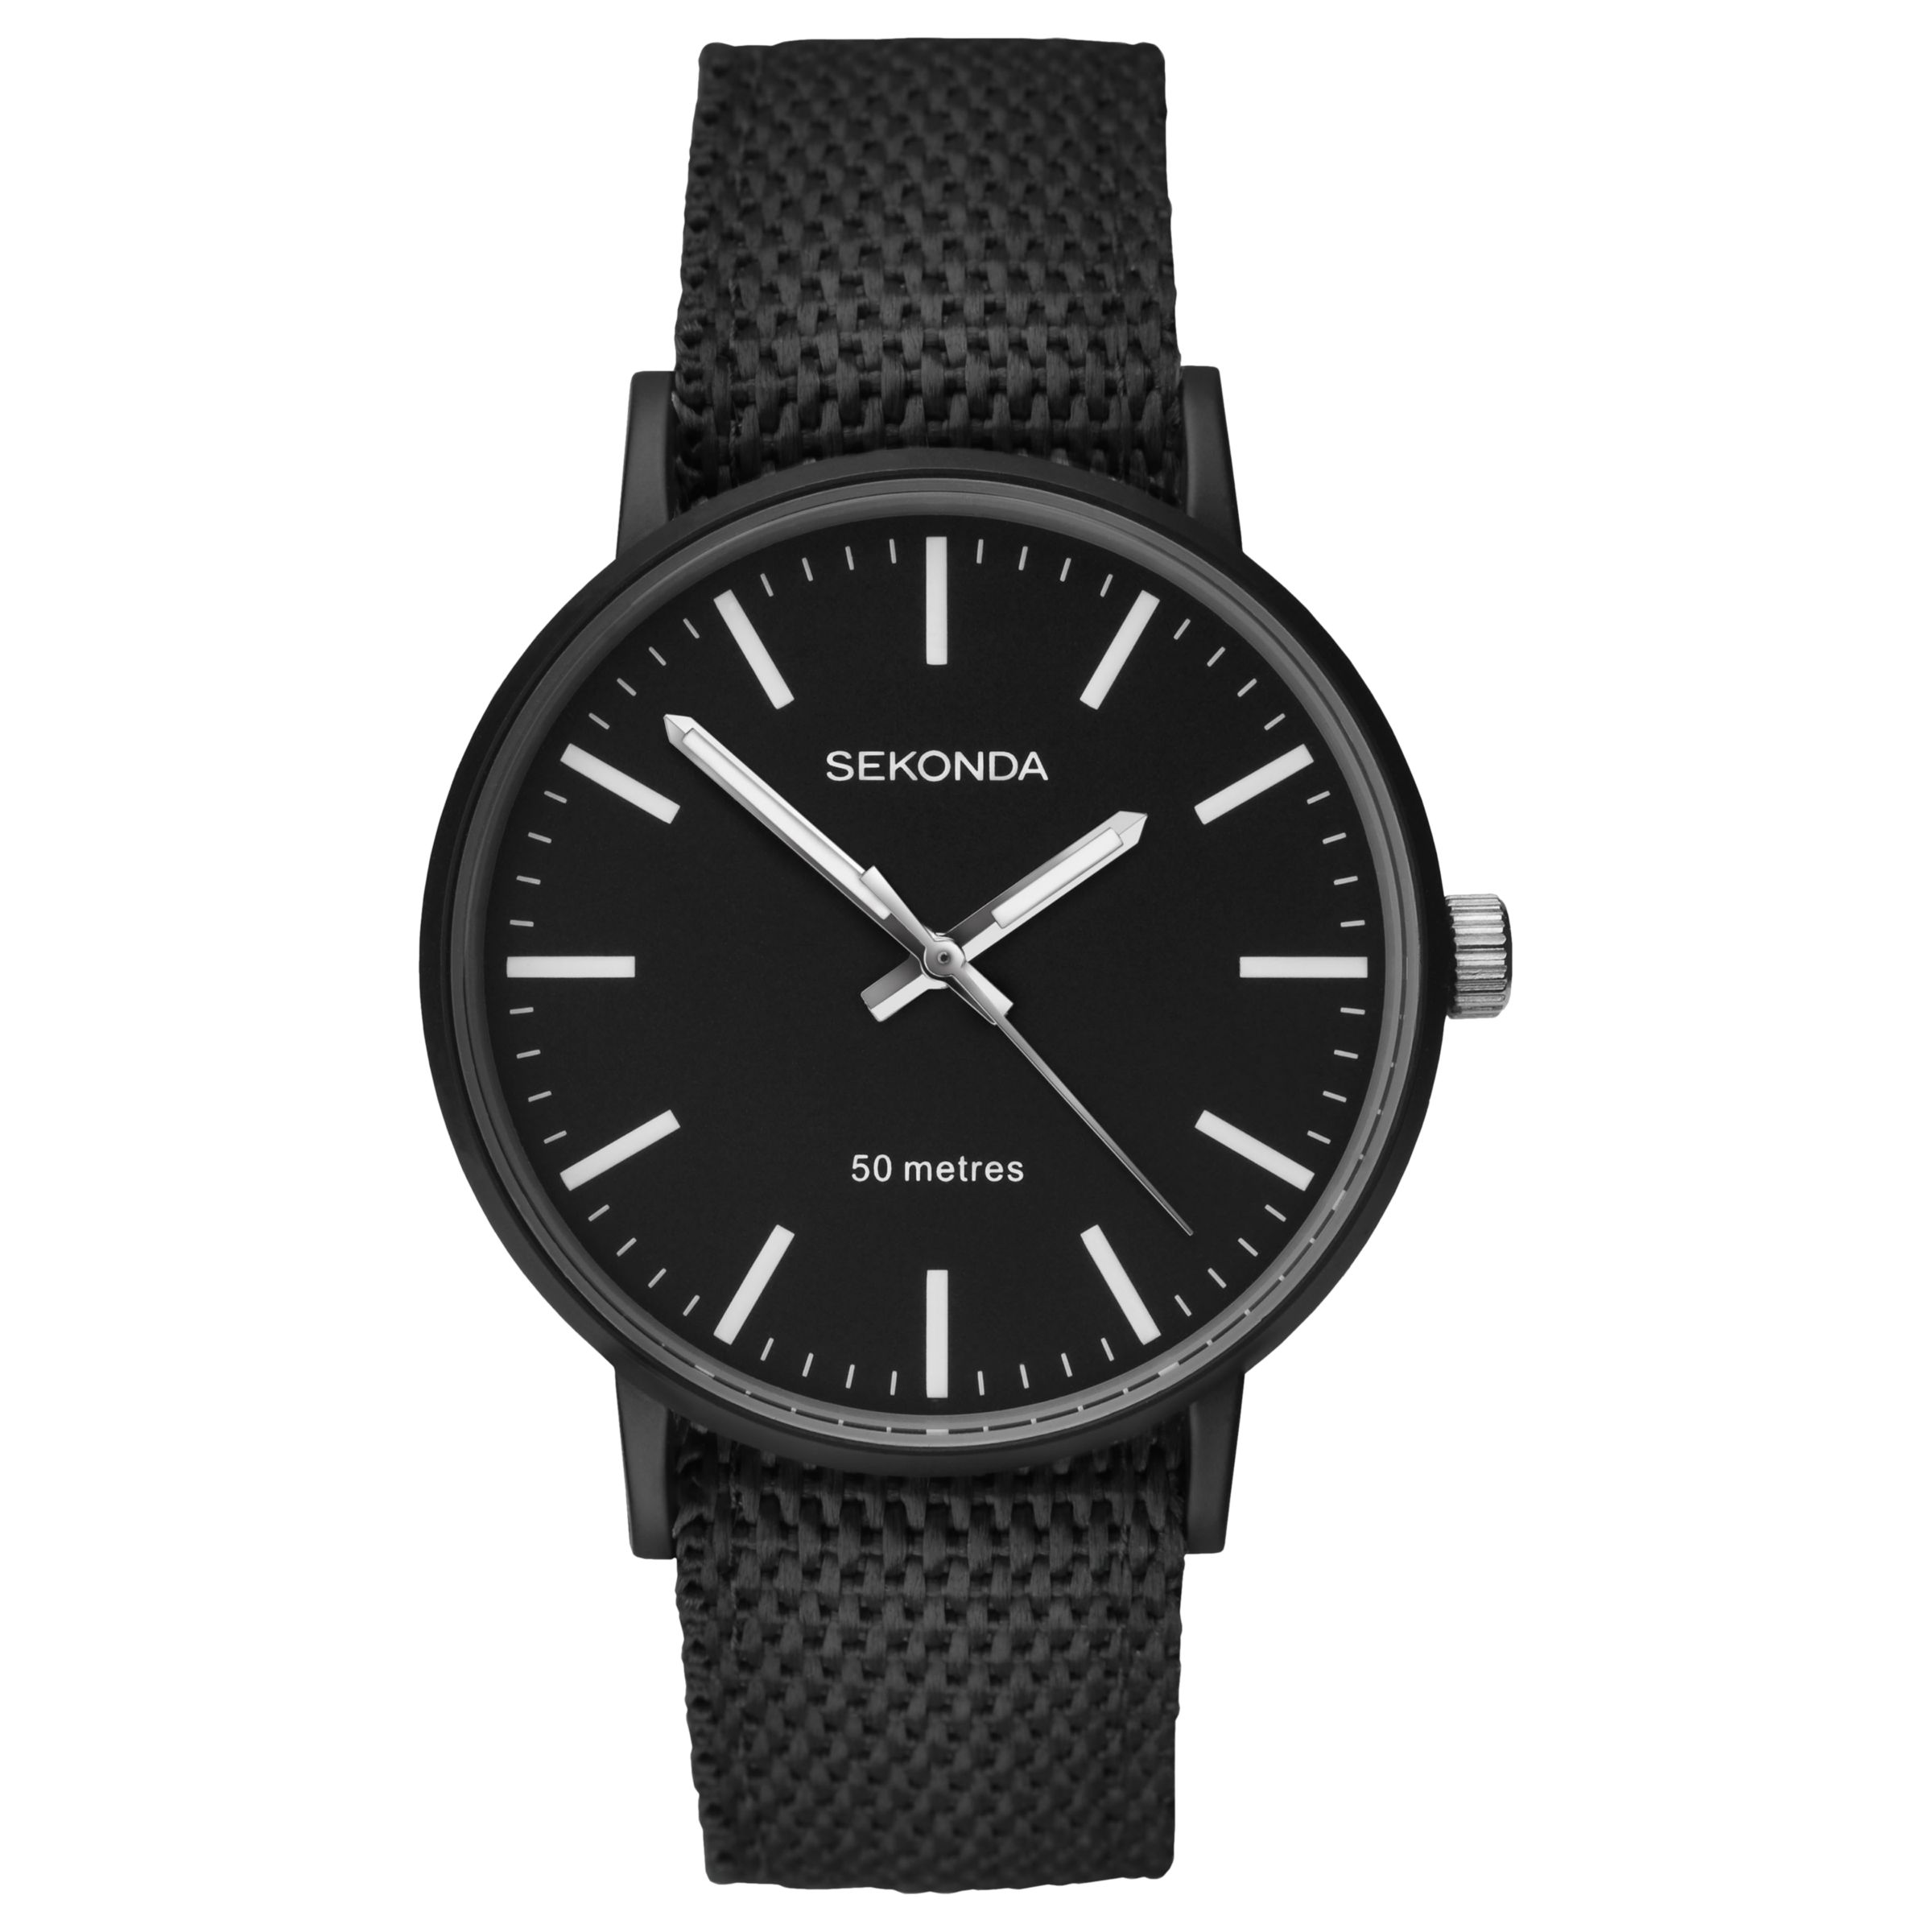 Sekonda Sekonda Men's Reversible Nylon Fabric Strap Watch